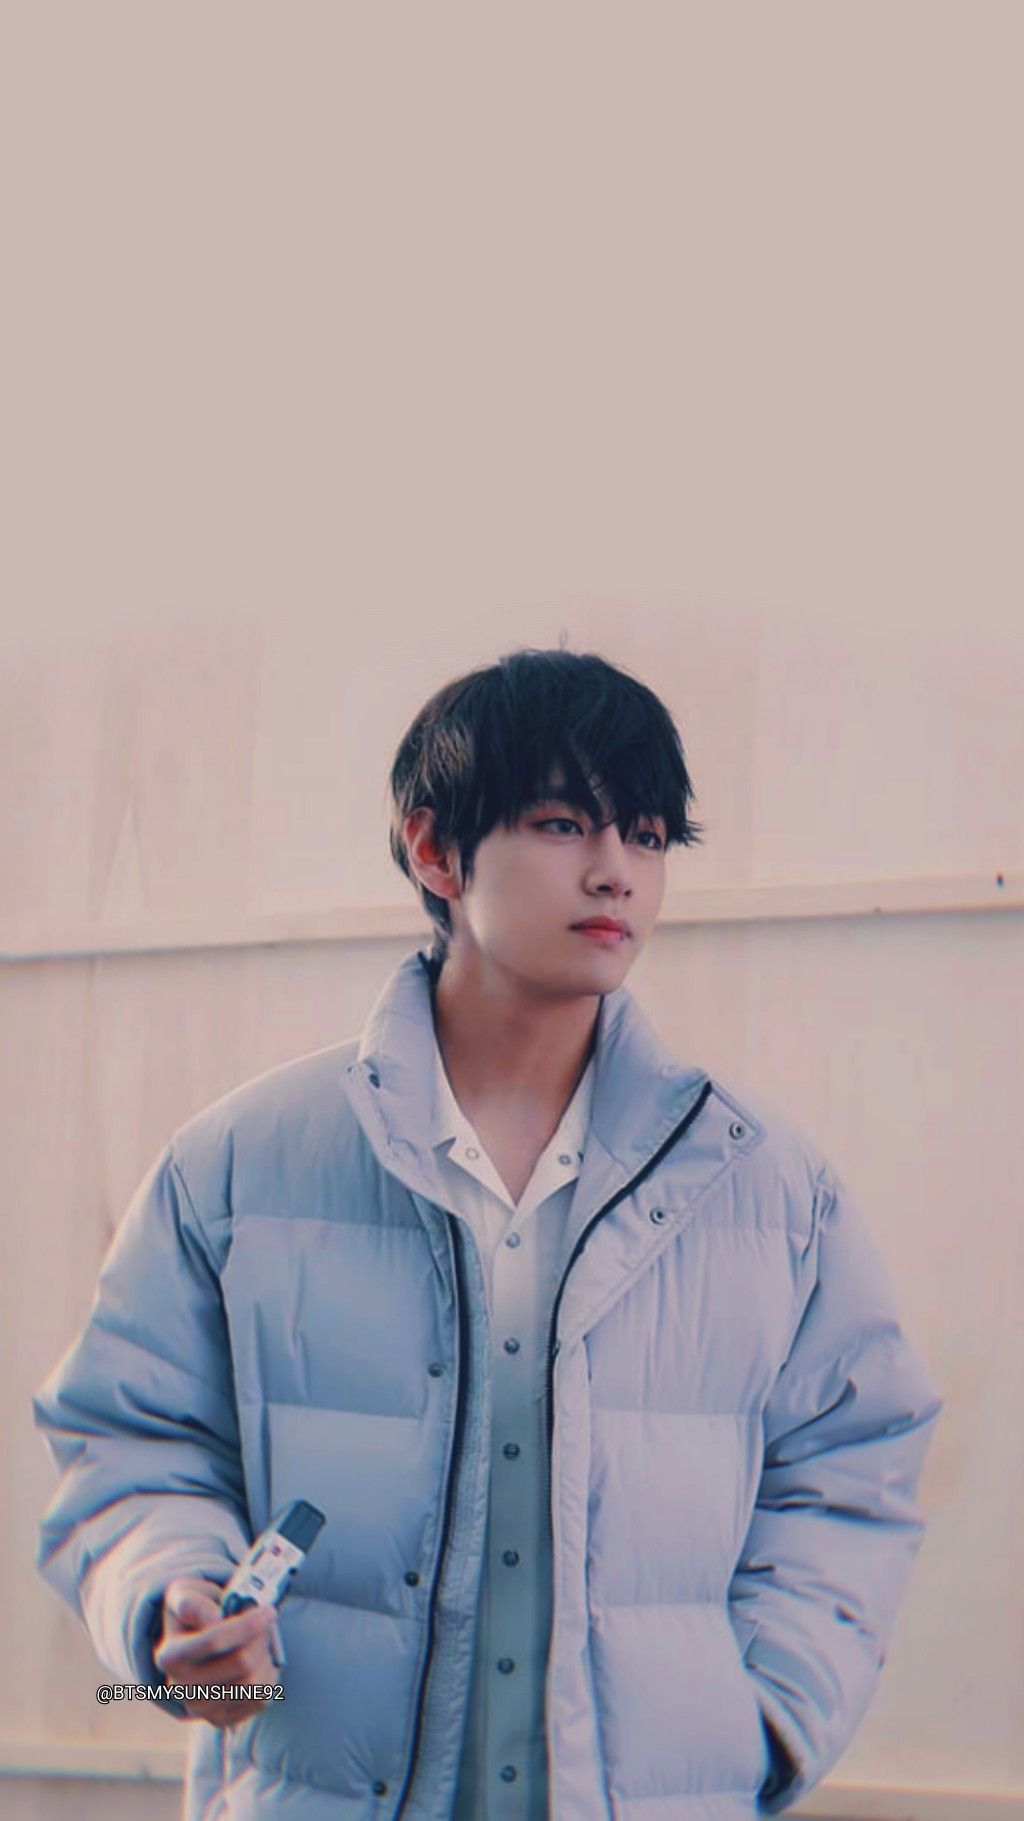 39dfe571f83a07 Pin by asttalm on bts in 2019 | Taehyung, BTS, Bts wallpaper